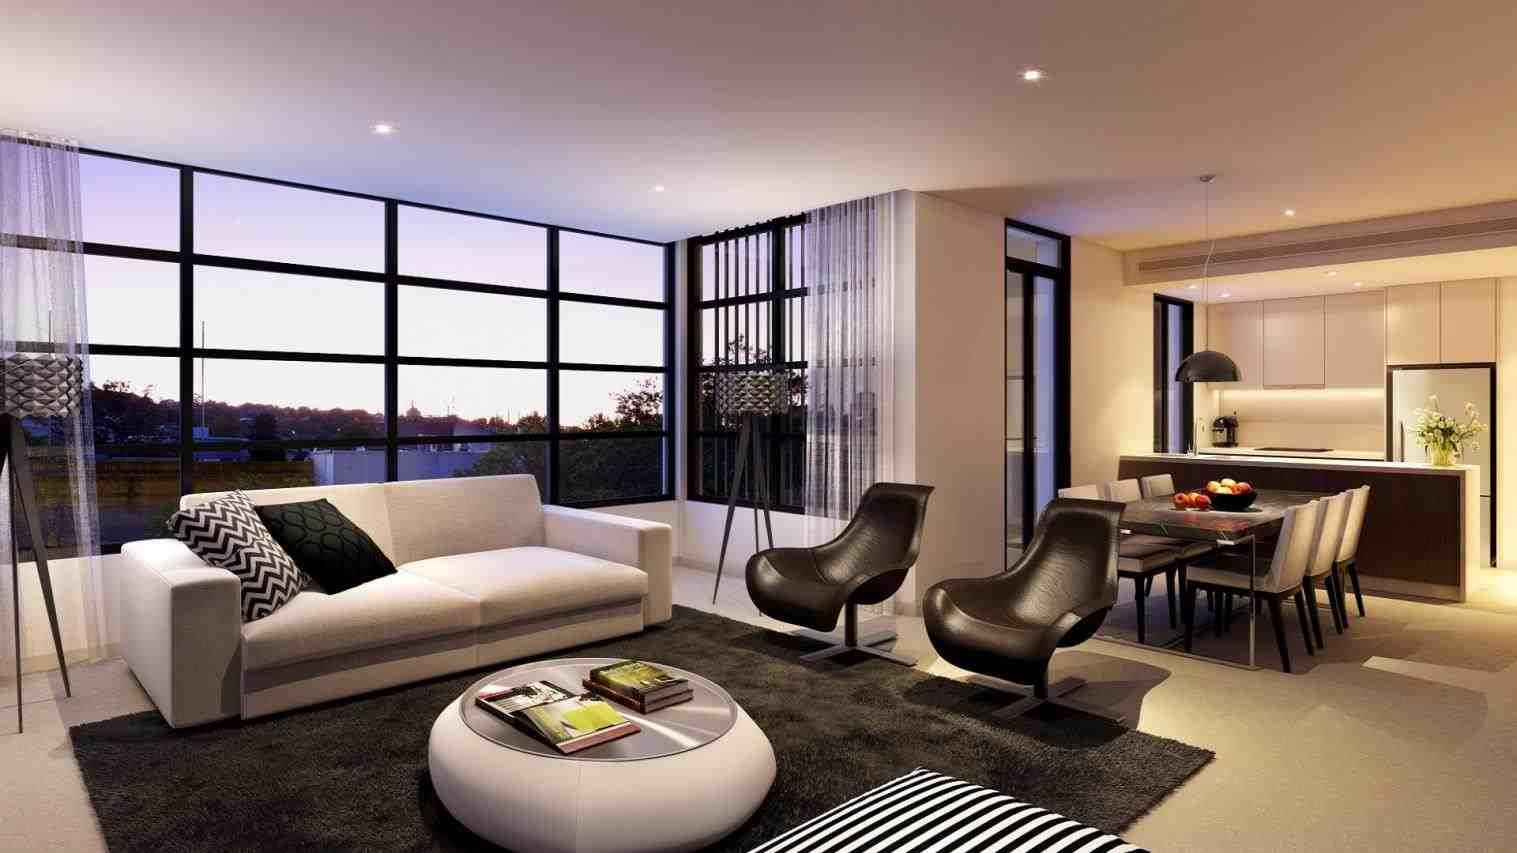 Anime Living Room Background Room Living Room Designs Interior